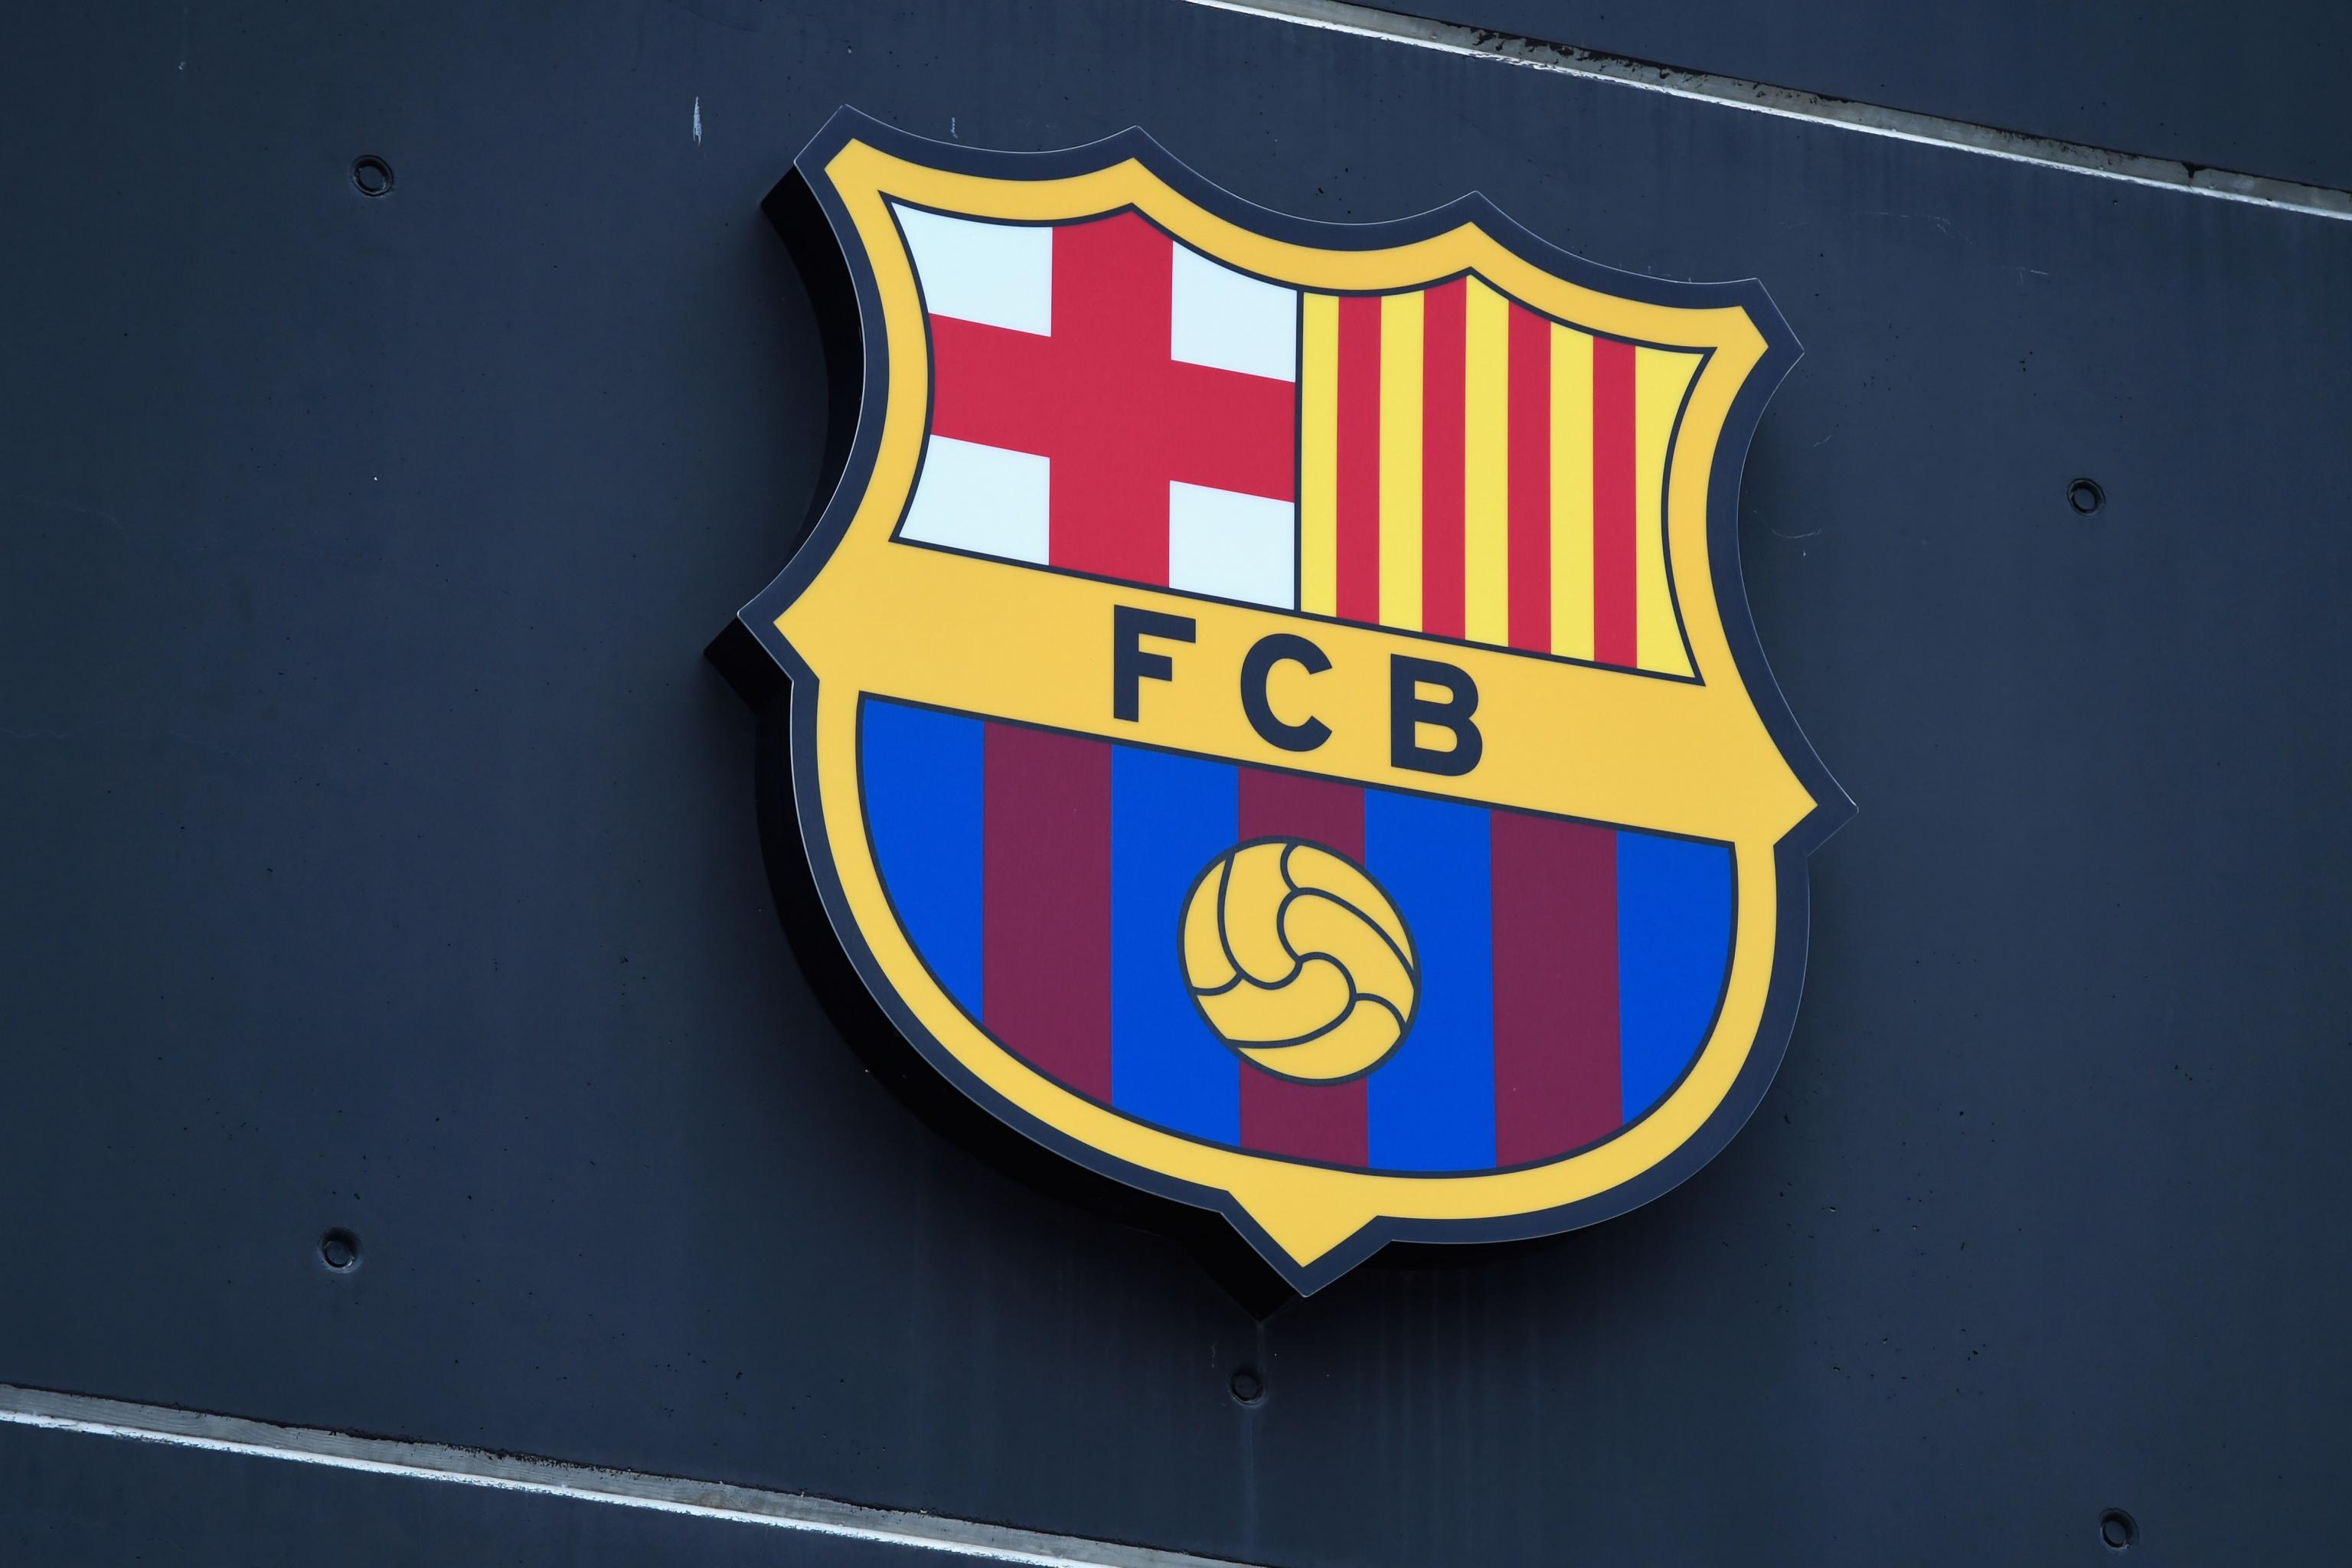 barcelona unveils redesigned crest explains new design bleacher report latest news videos and highlights barcelona unveils redesigned crest